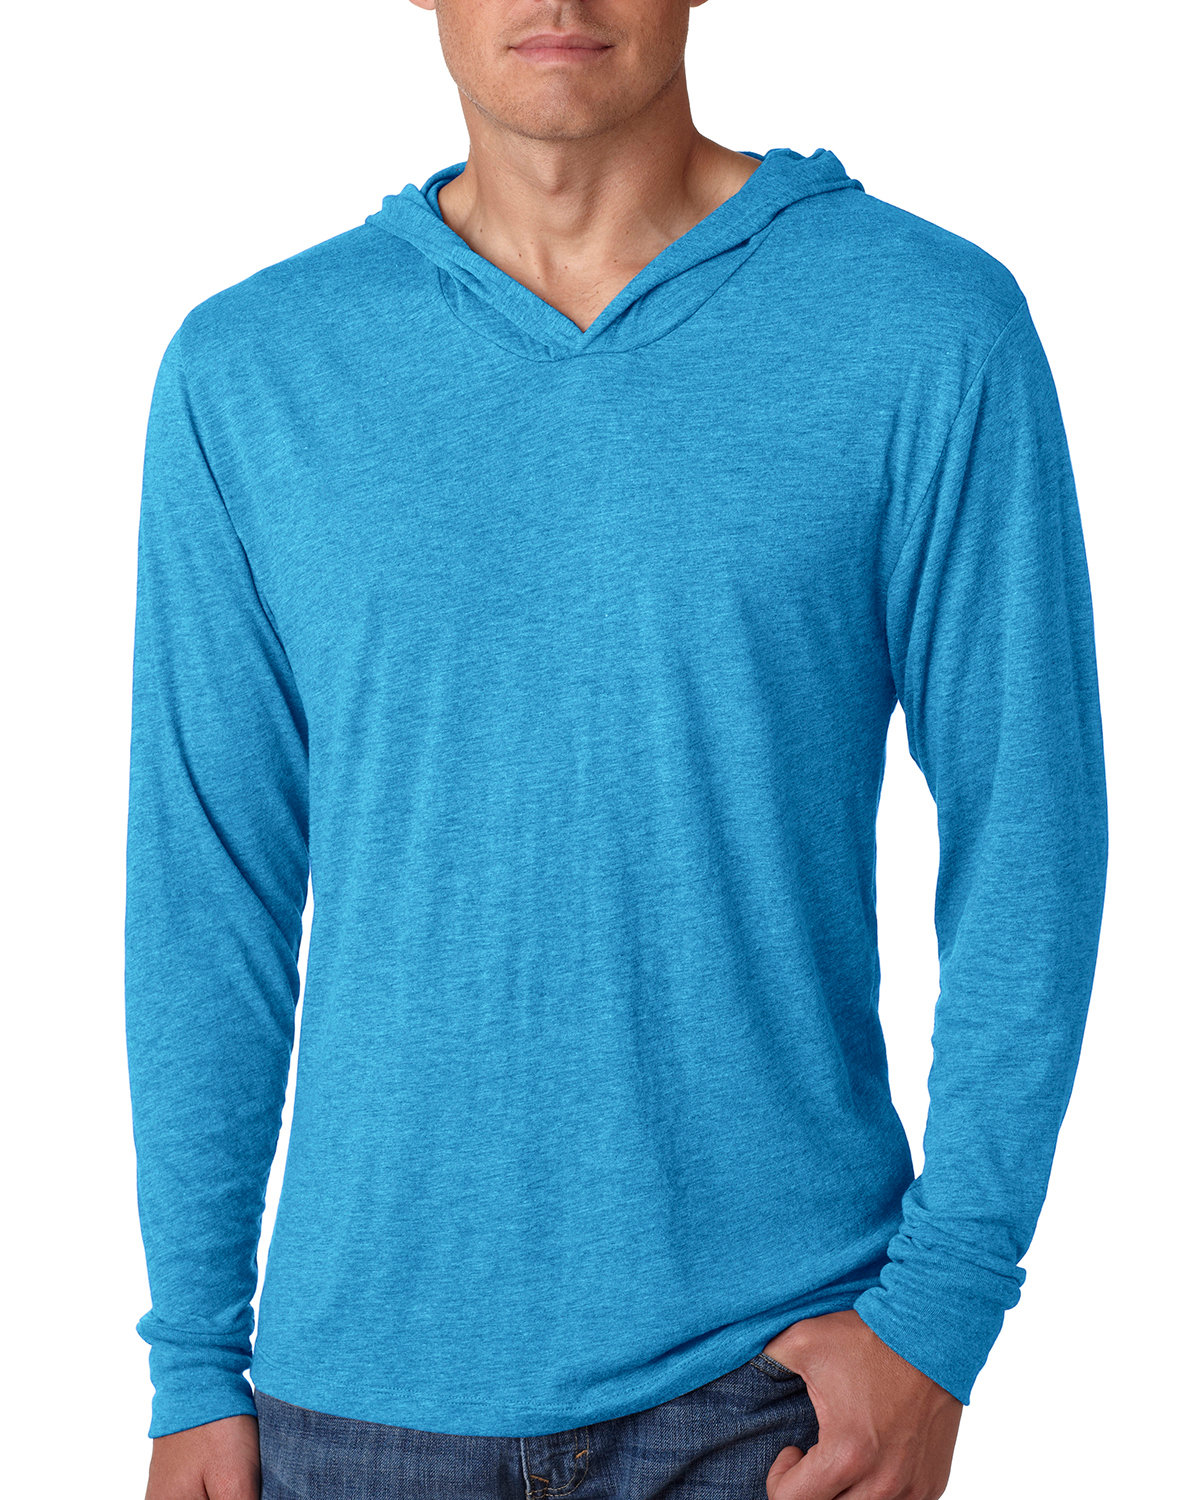 Next Level Adult Triblend Long-Sleeve Hoody VIN TURQUOISE